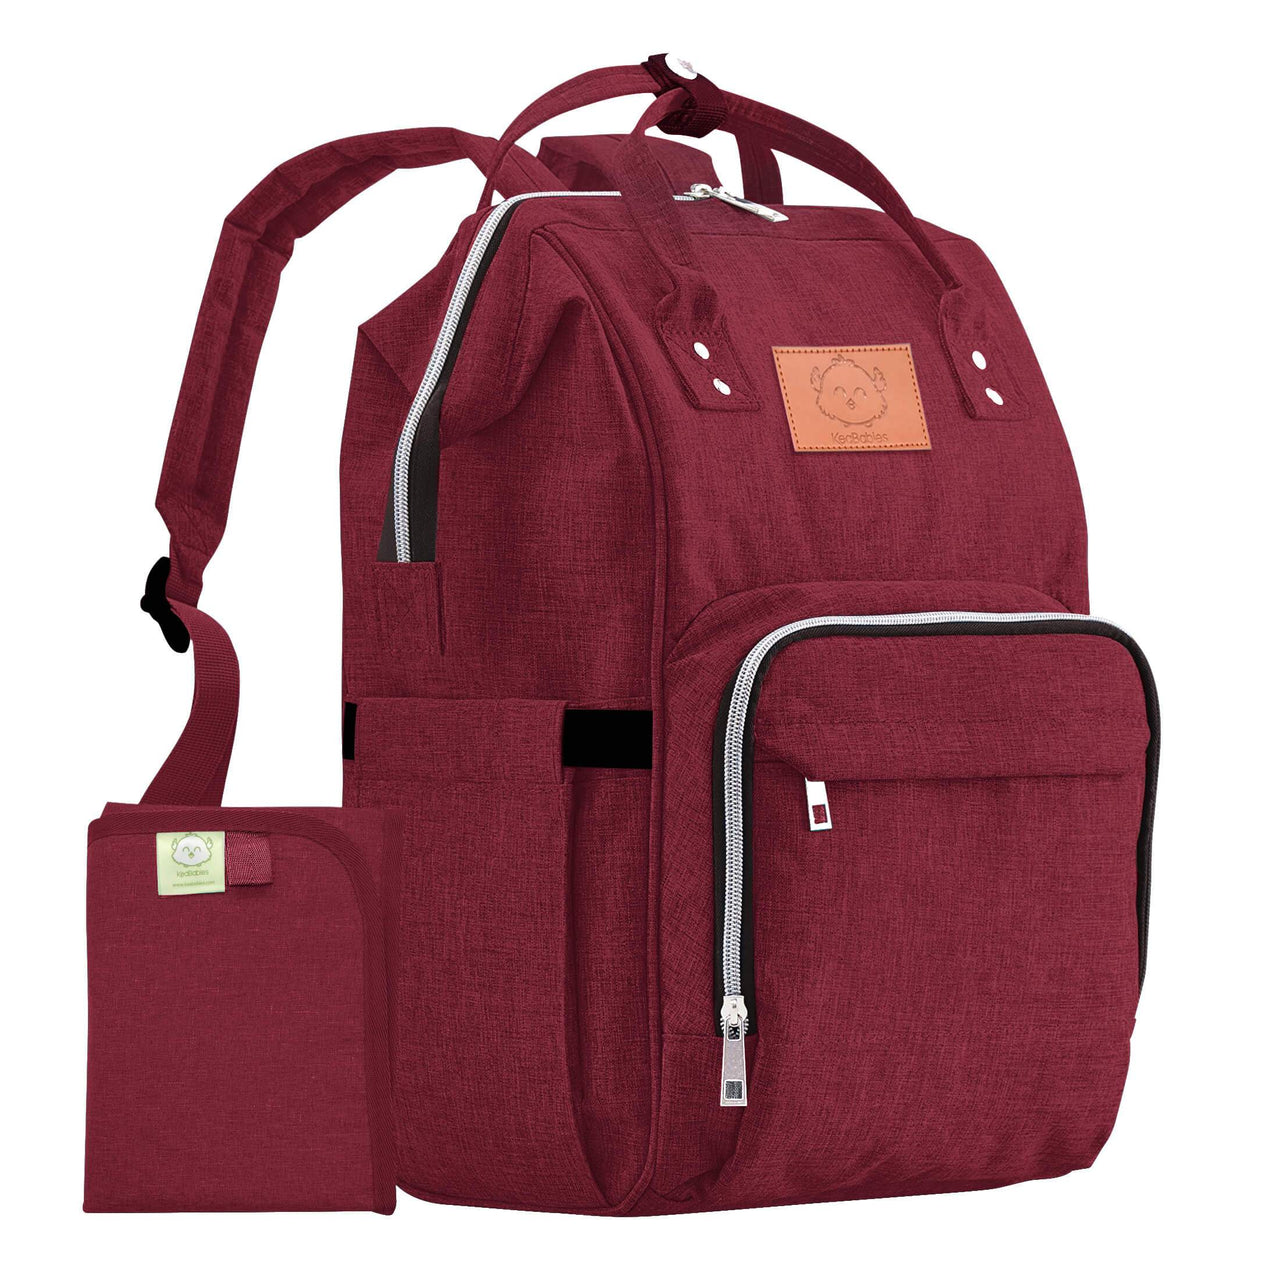 Kids & Babies - Original Diaper Bag Backpack (Wine Red)